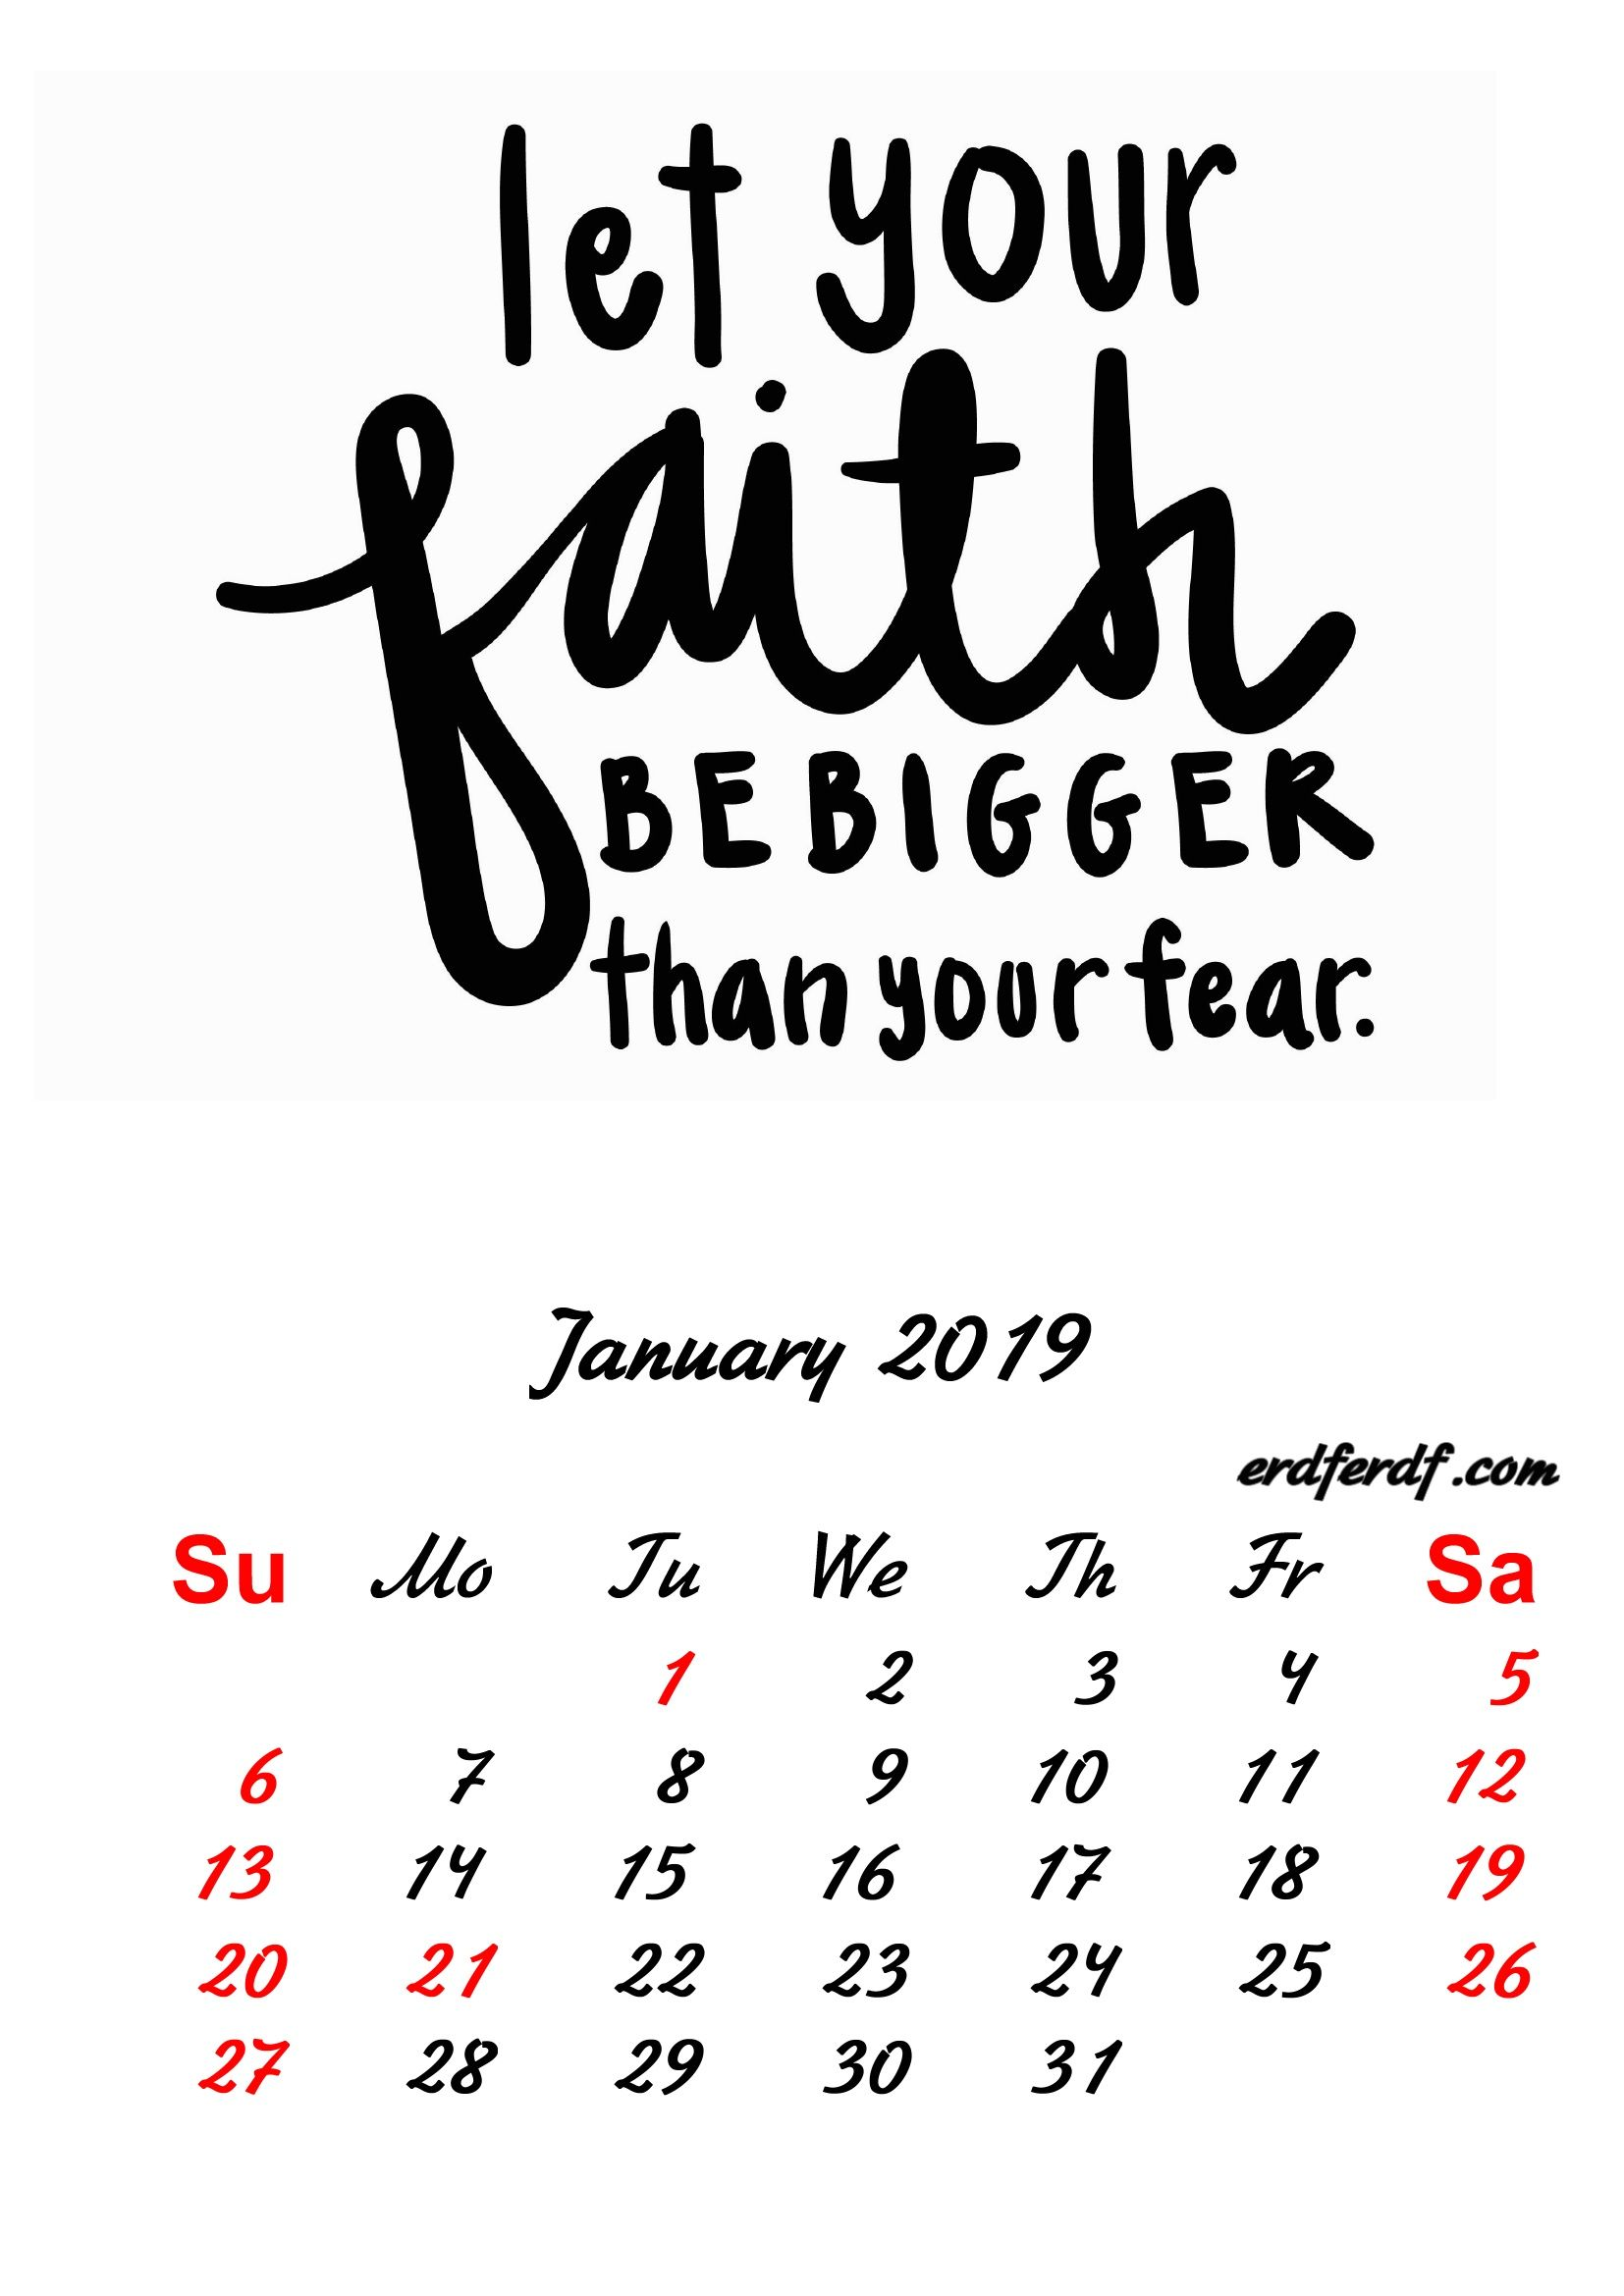 Inspiring January 2019 Calendar 1 January 2019 Inspirational Quotes Pprintable Calendar | Monthly